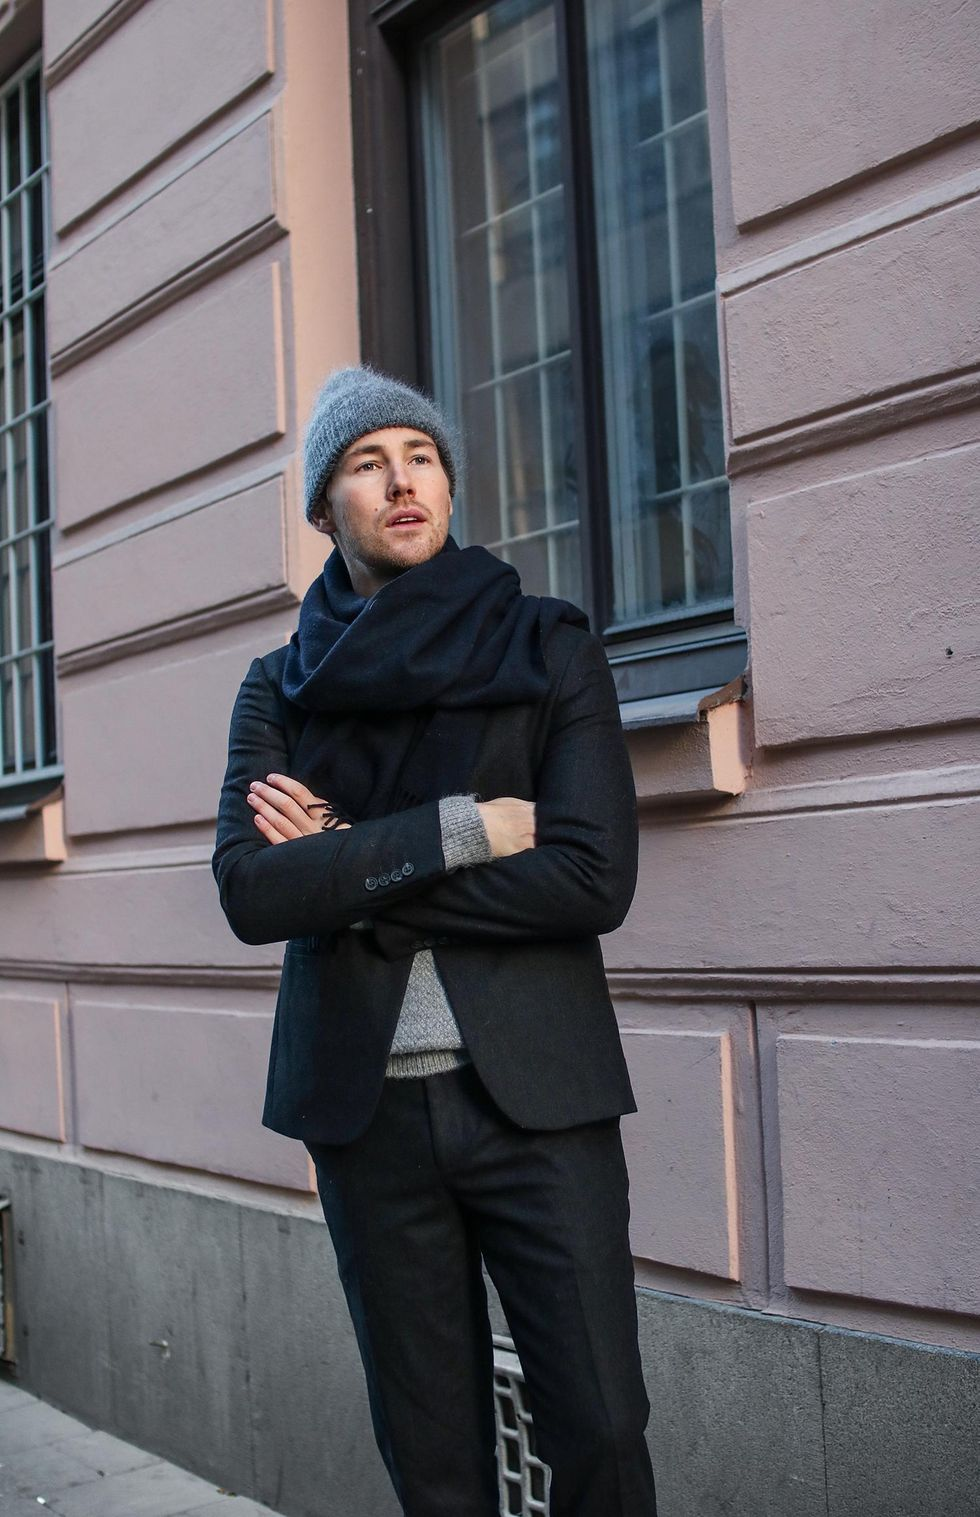 Tobias Sikström kostym tips COS Mr Porter.jpg